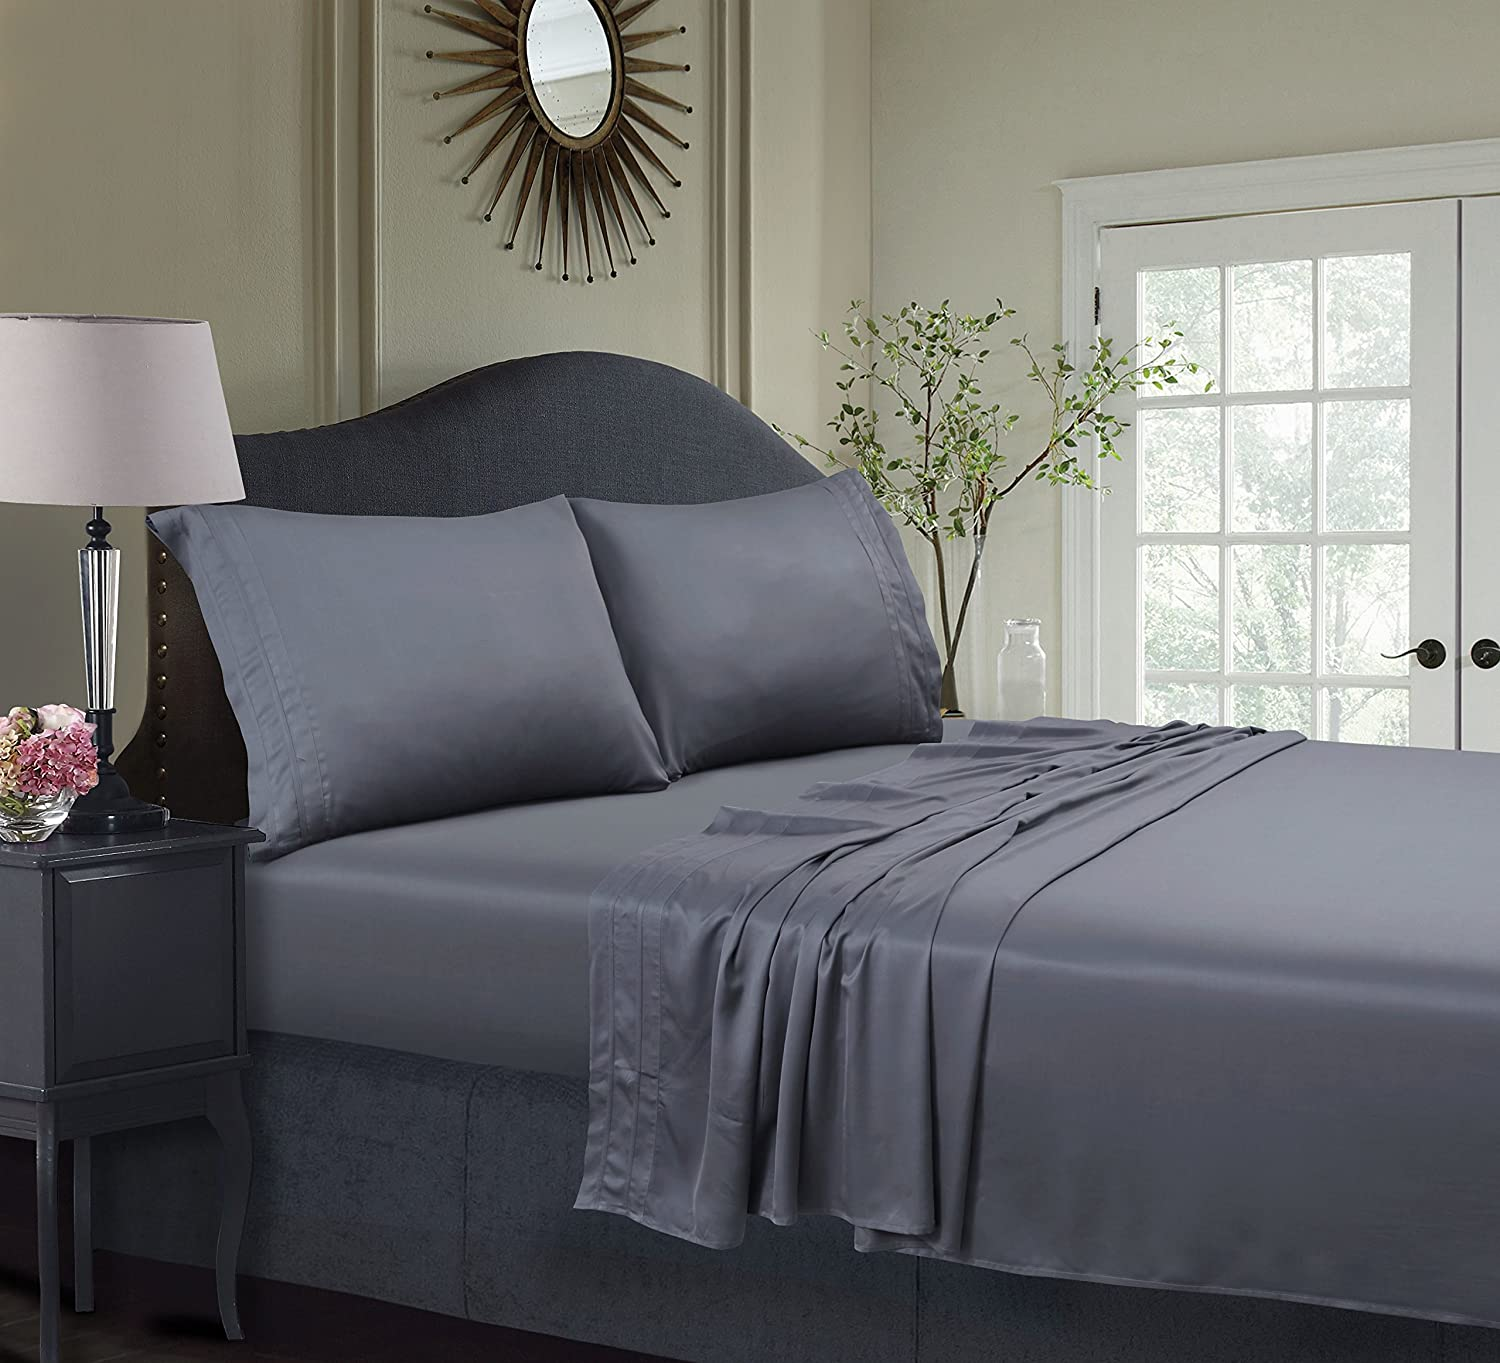 Tribeca Living BAMB300SSTWXST 300 TC Rayon from Bamboo Deep Pocket Sheet Set Twin XL Steel Grey